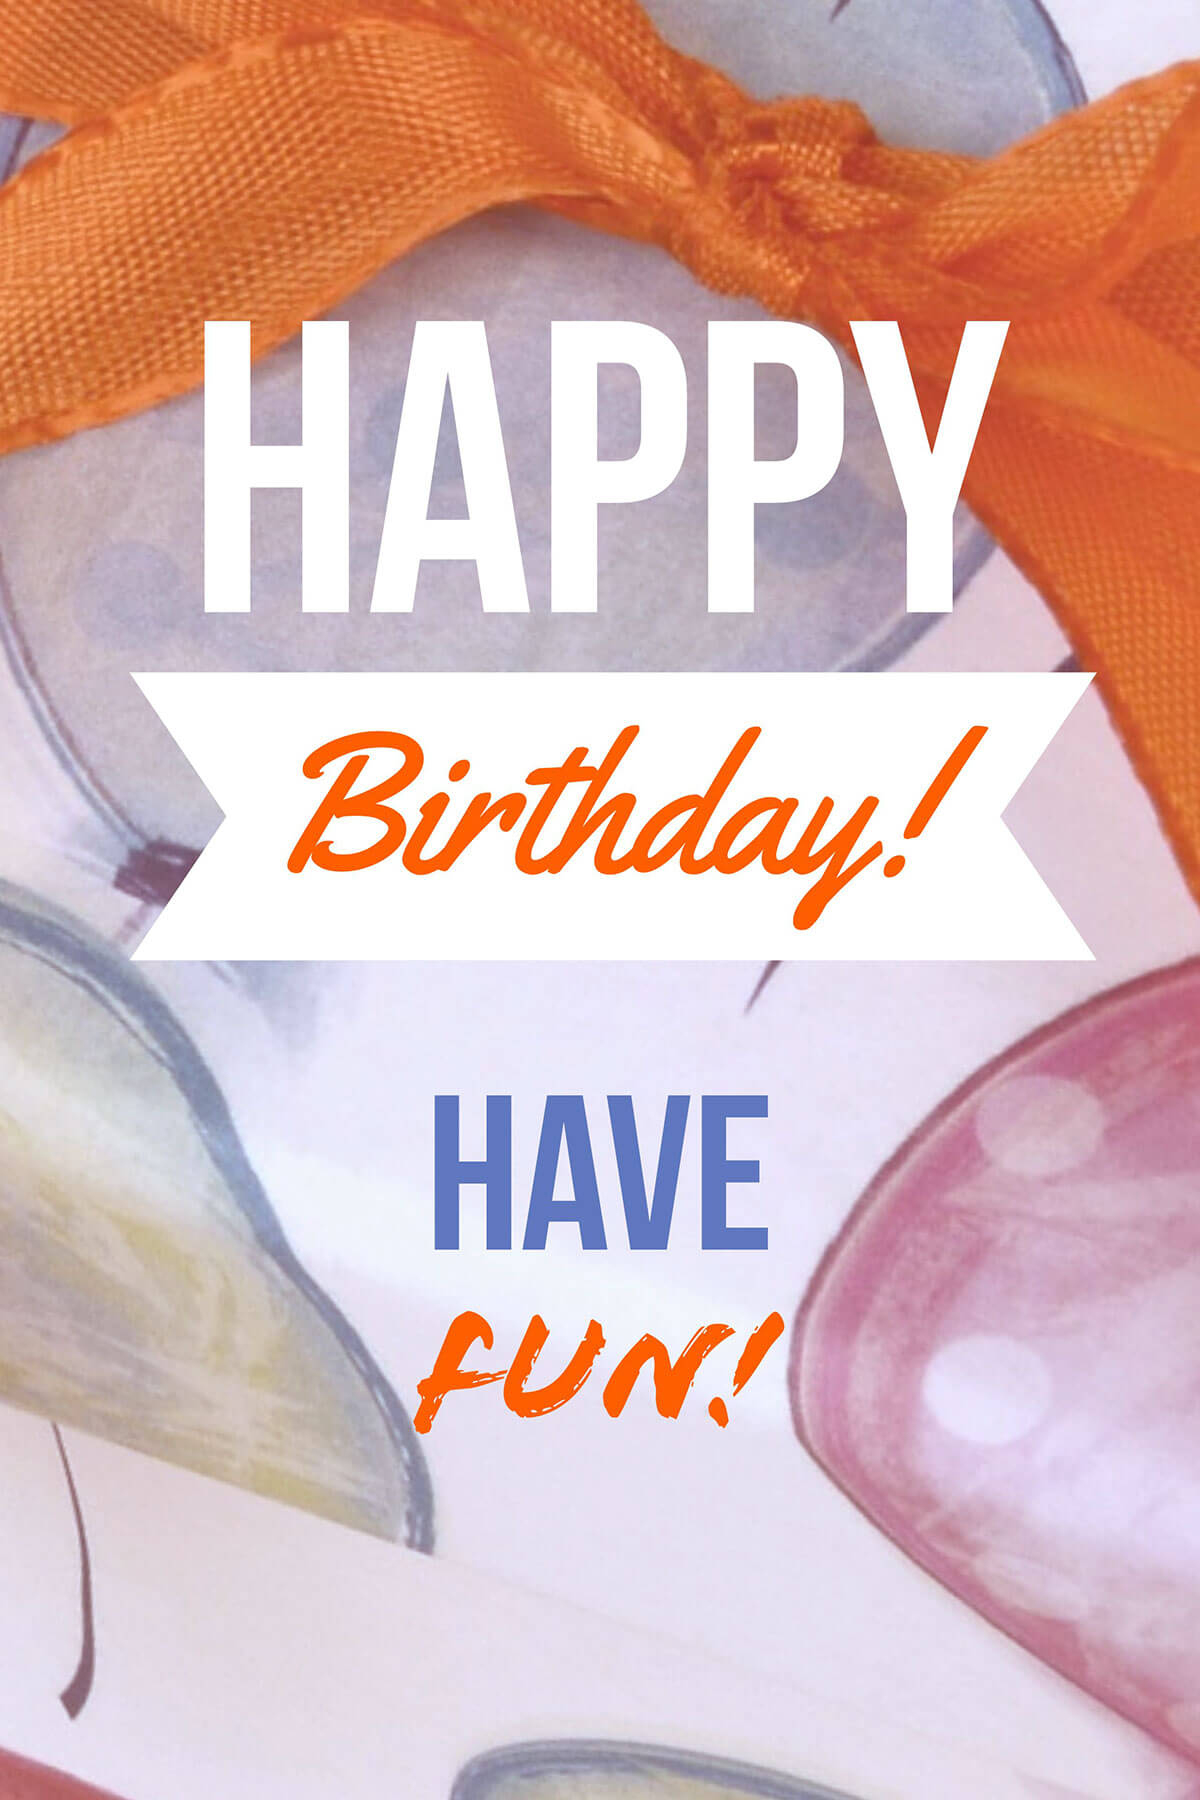 Free Online Card Maker: Create Custom Greeting Cards | Adobe Spark - Make Your Own Printable Birthday Cards Online Free